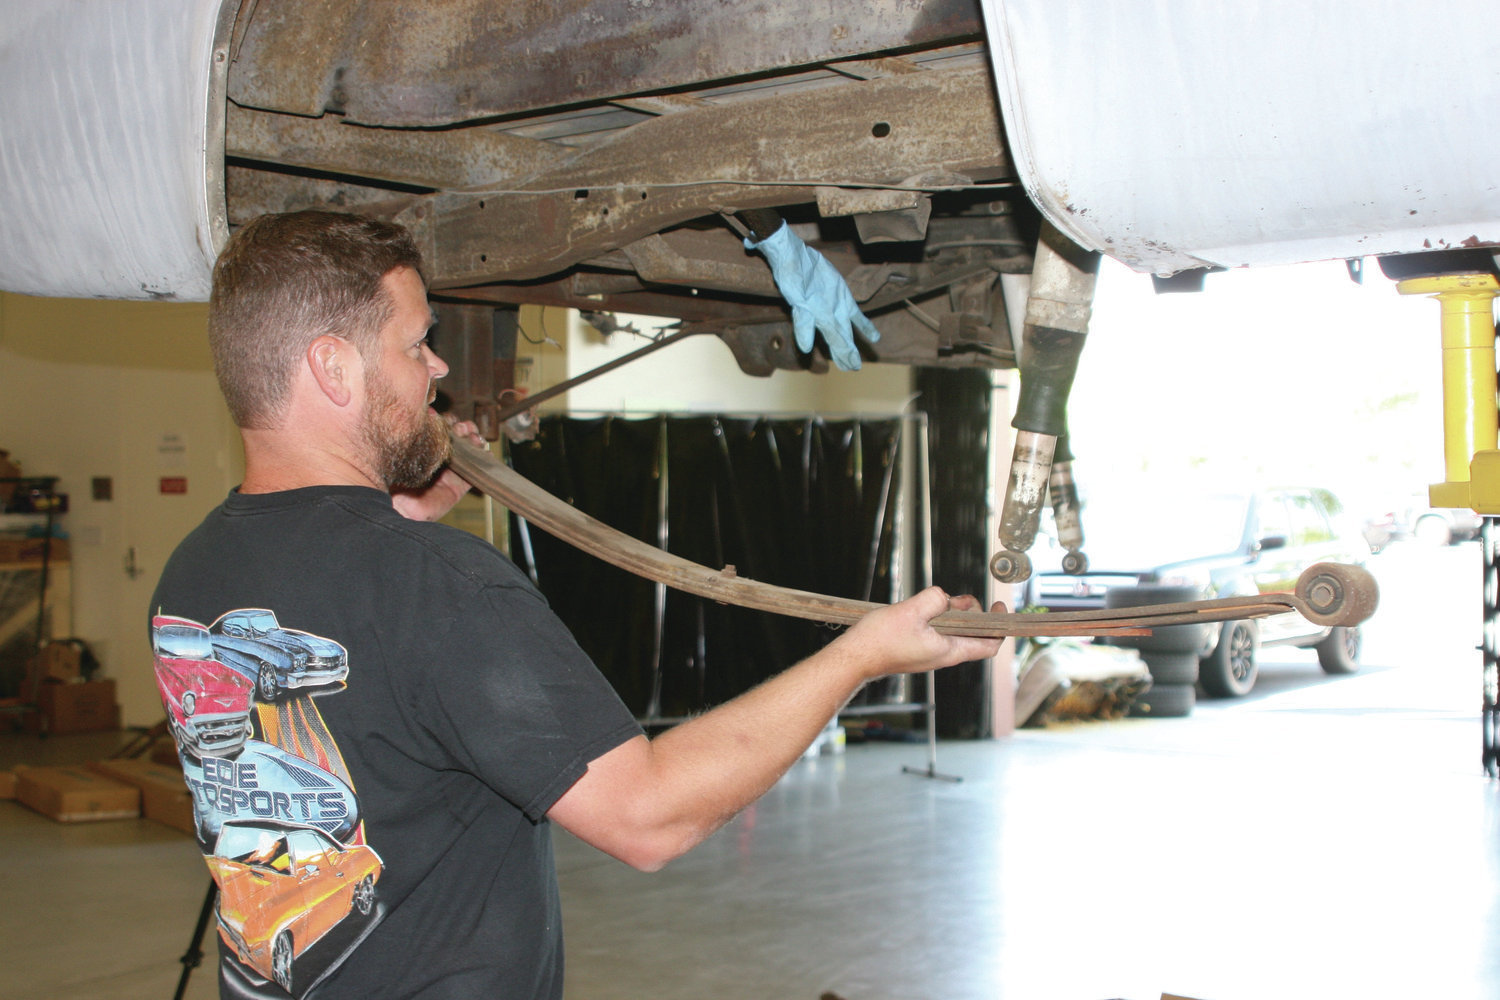 1. We first supported the truck on a rack and making sure it was safe to work under. Next we removed the rear axle and leaf springs, but I won't bore you guys with those details.